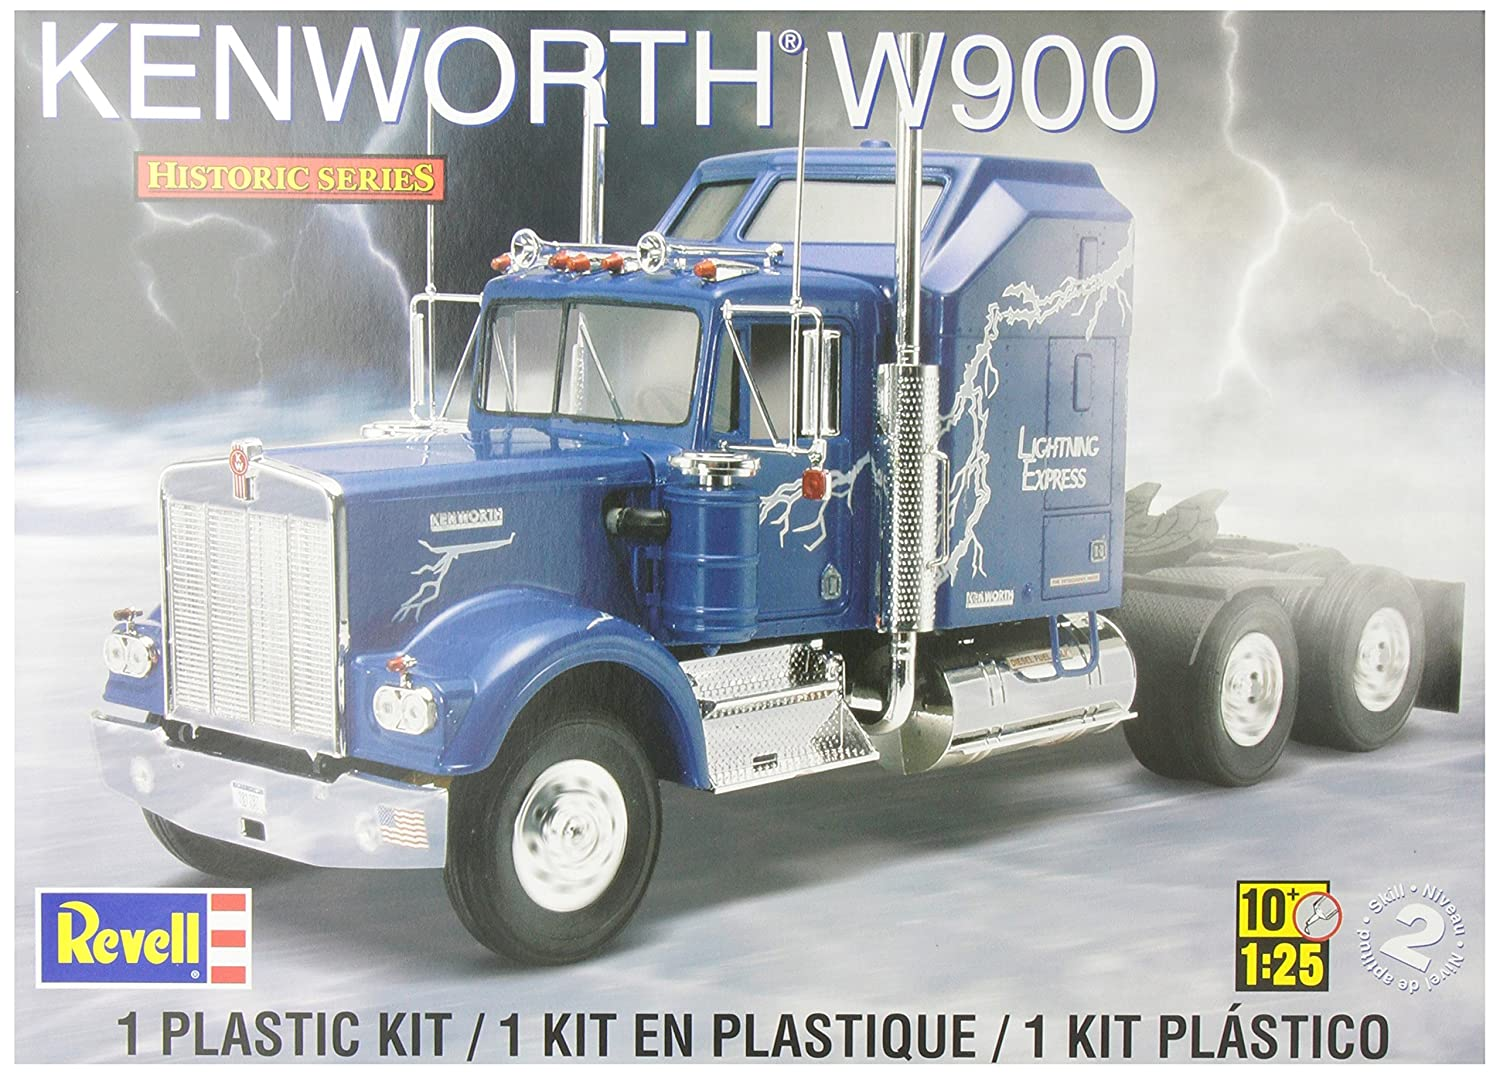 Amazon.com: Revell Kenworth W900: Toys & Games